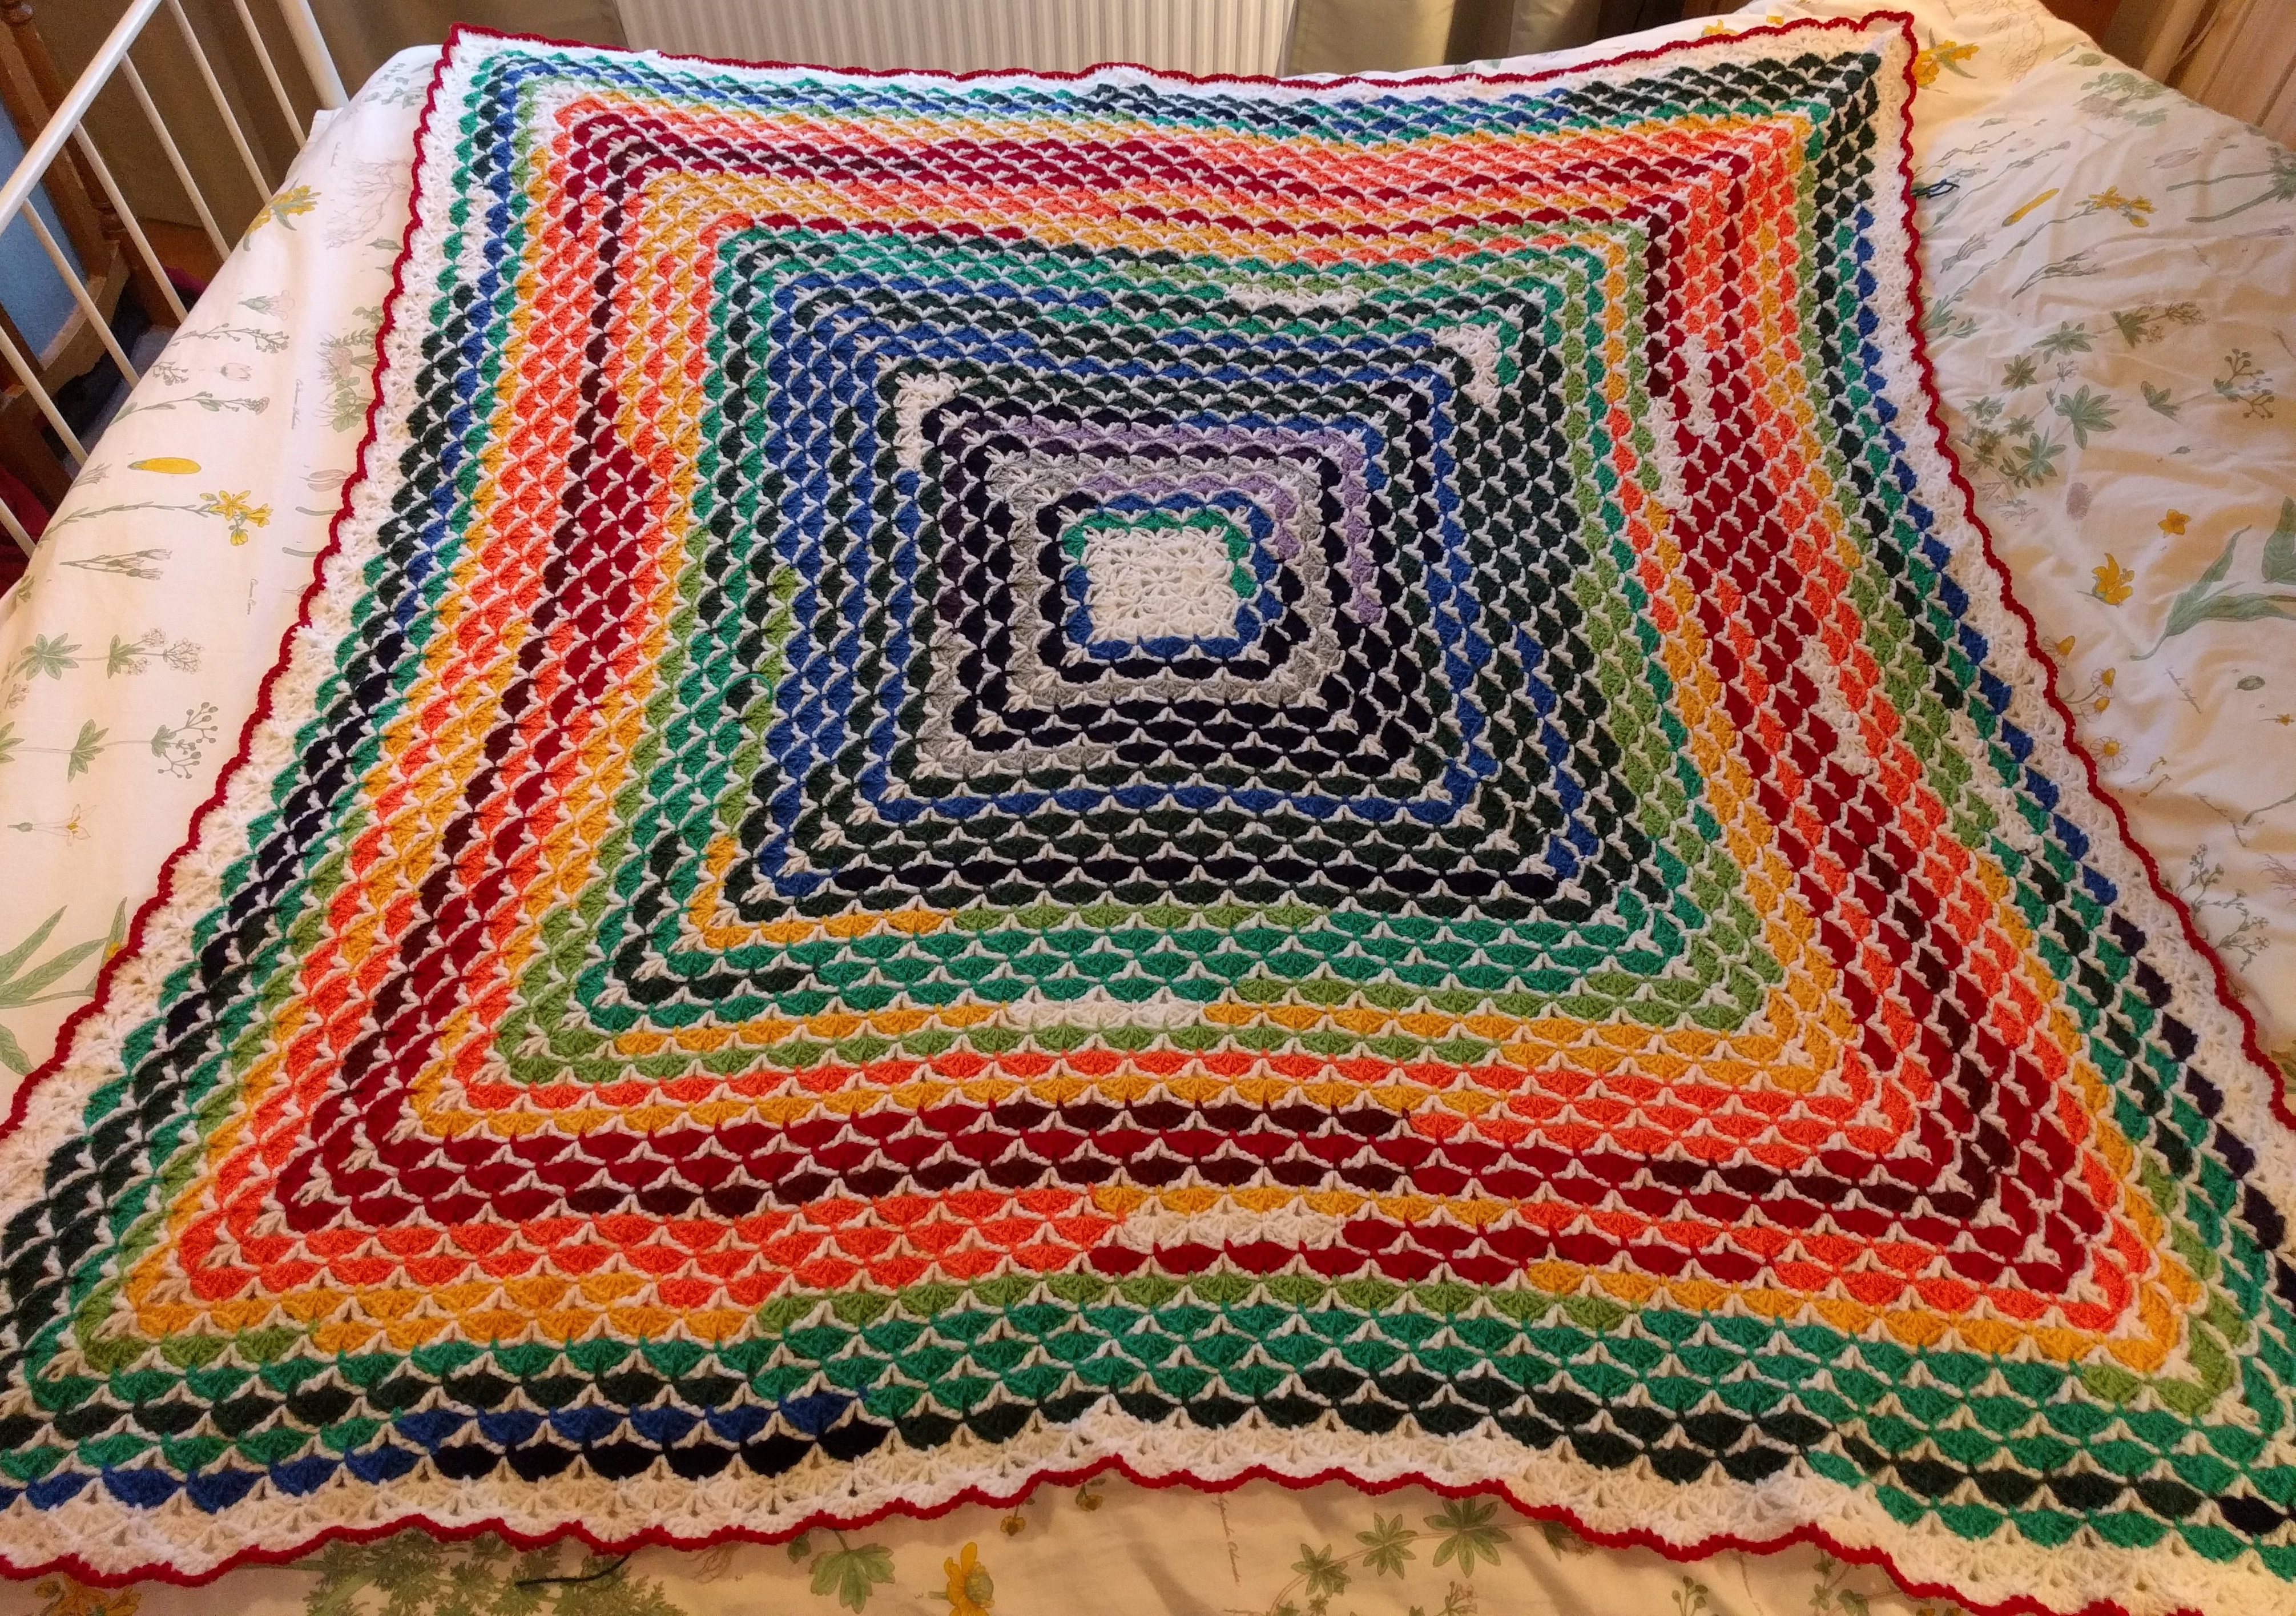 Crochet Patterns For Temperature Blanket : www.markazits.com - Temperature blanket / afghan